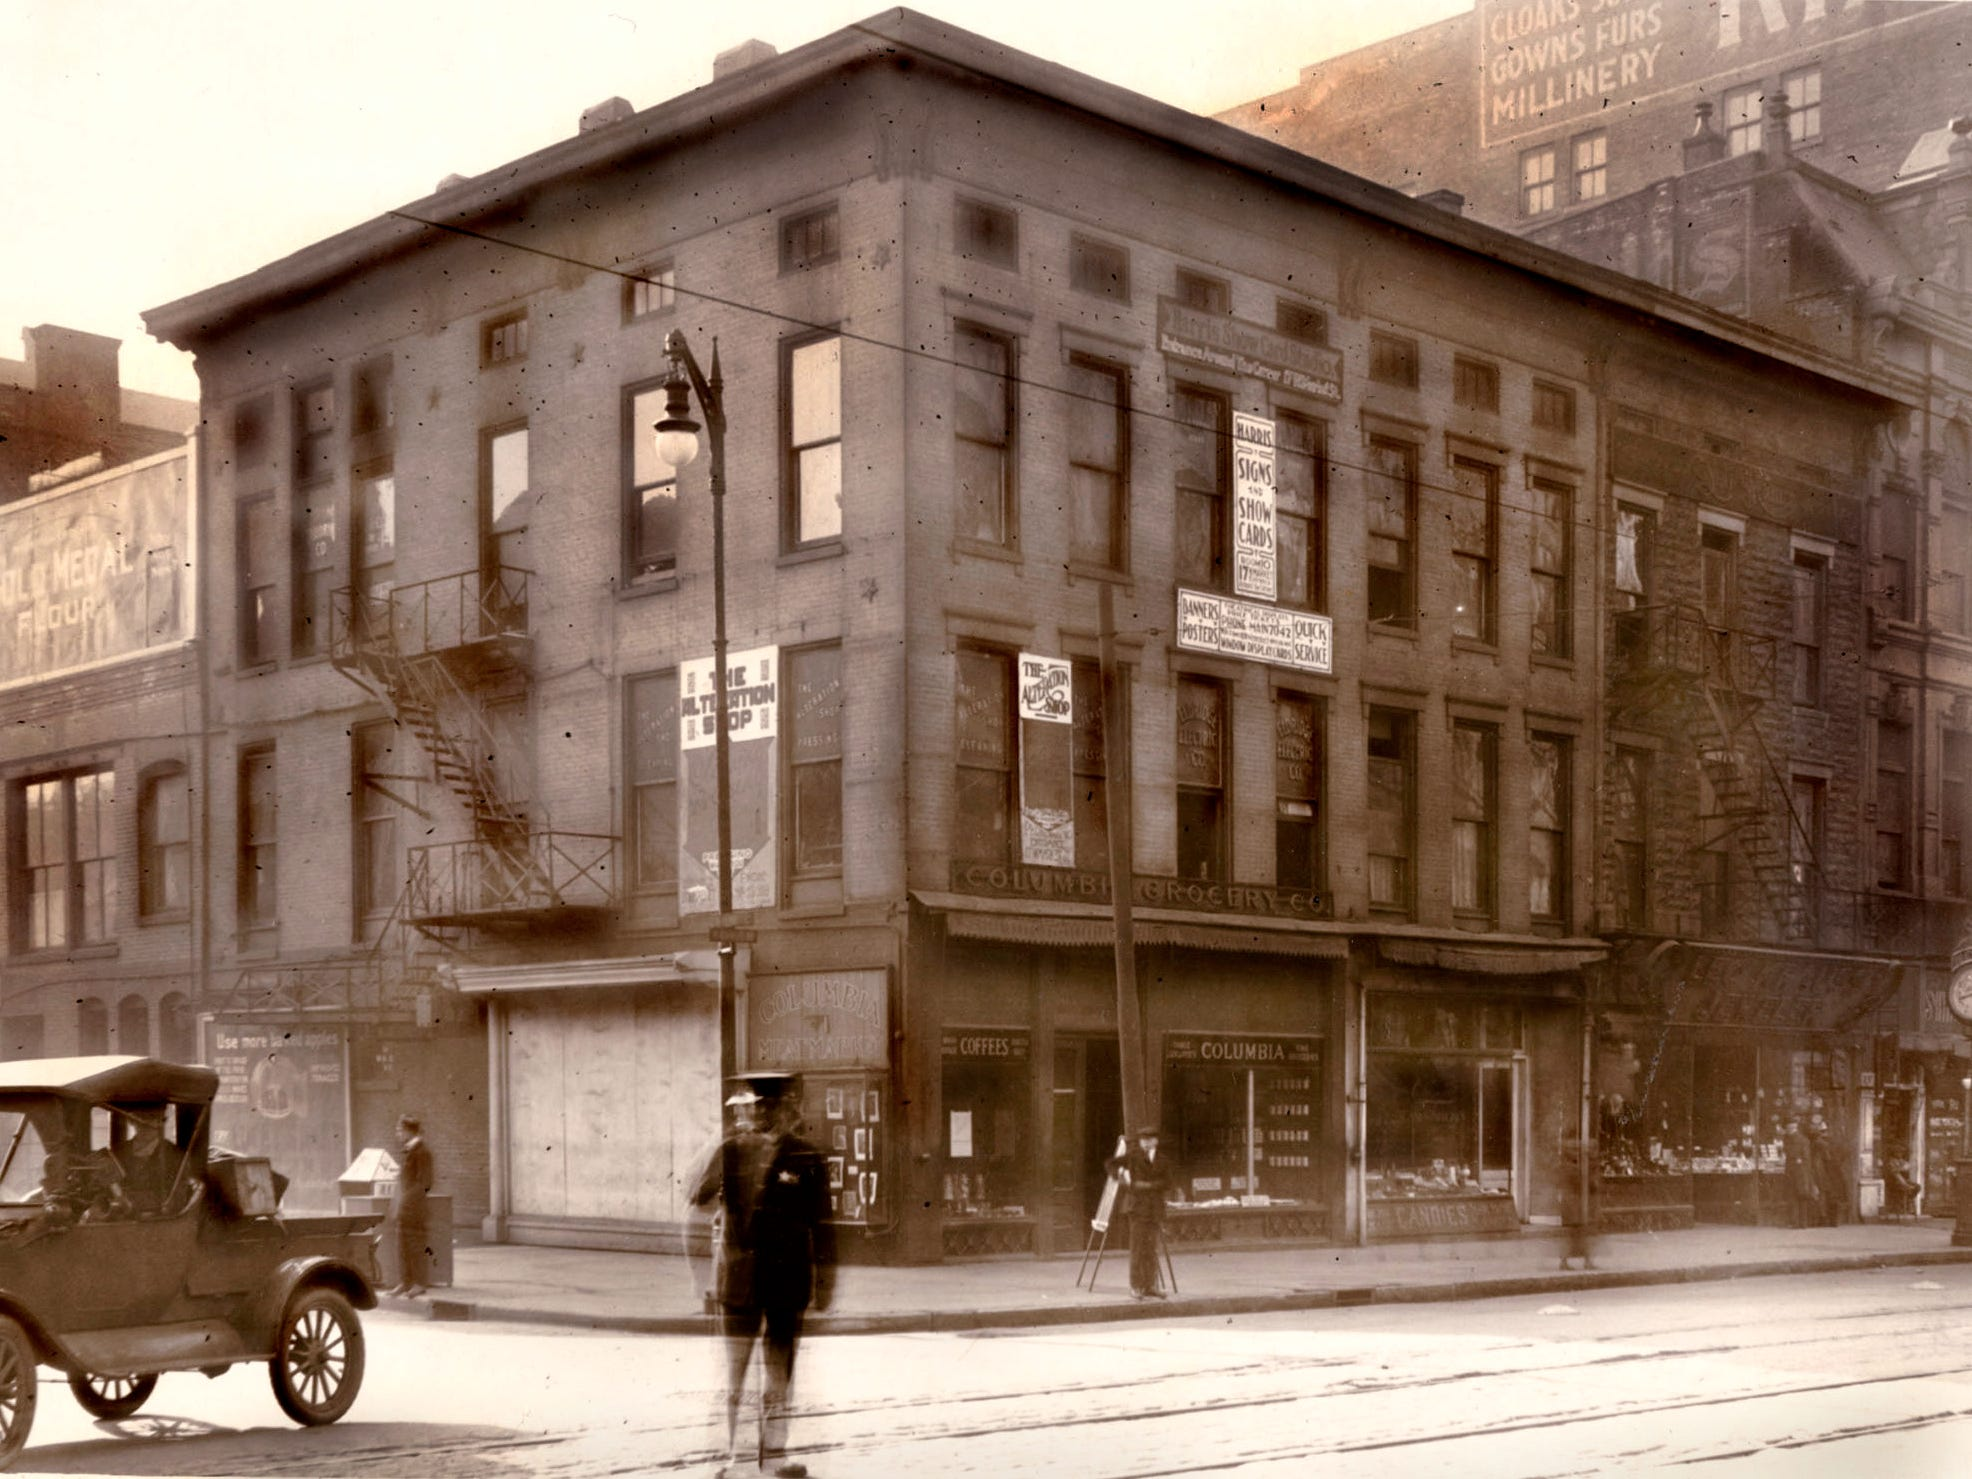 A policeman directs traffic in the intersection of Market and Illinois Streets on April 13, 1919 in this photo looking southeast (Illinois Street is at right). At the time, the Columbia Grocery Co. occupied the corner ground floor space. To the right of the grocery was the Olympia Candy Store and Leo Krauss Jewelry. Businesses on upper floors included The Alteration Shop, Eldridge Electric Co. and Harris Show Signs and Show Cards, which produced banners, posters and window display cards. The building is no longer standing, and the site is currently occupied by The Illinois Building at 17 W. Market St.